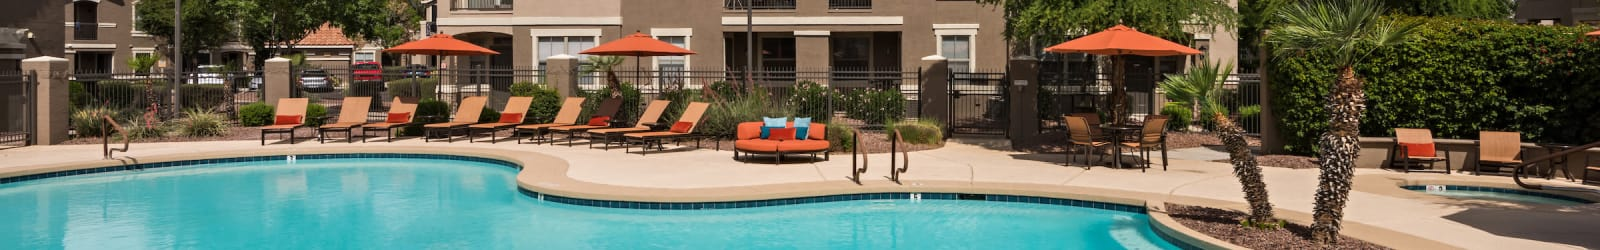 Contact us at Villas on Hampton Avenue in Mesa, Arizona